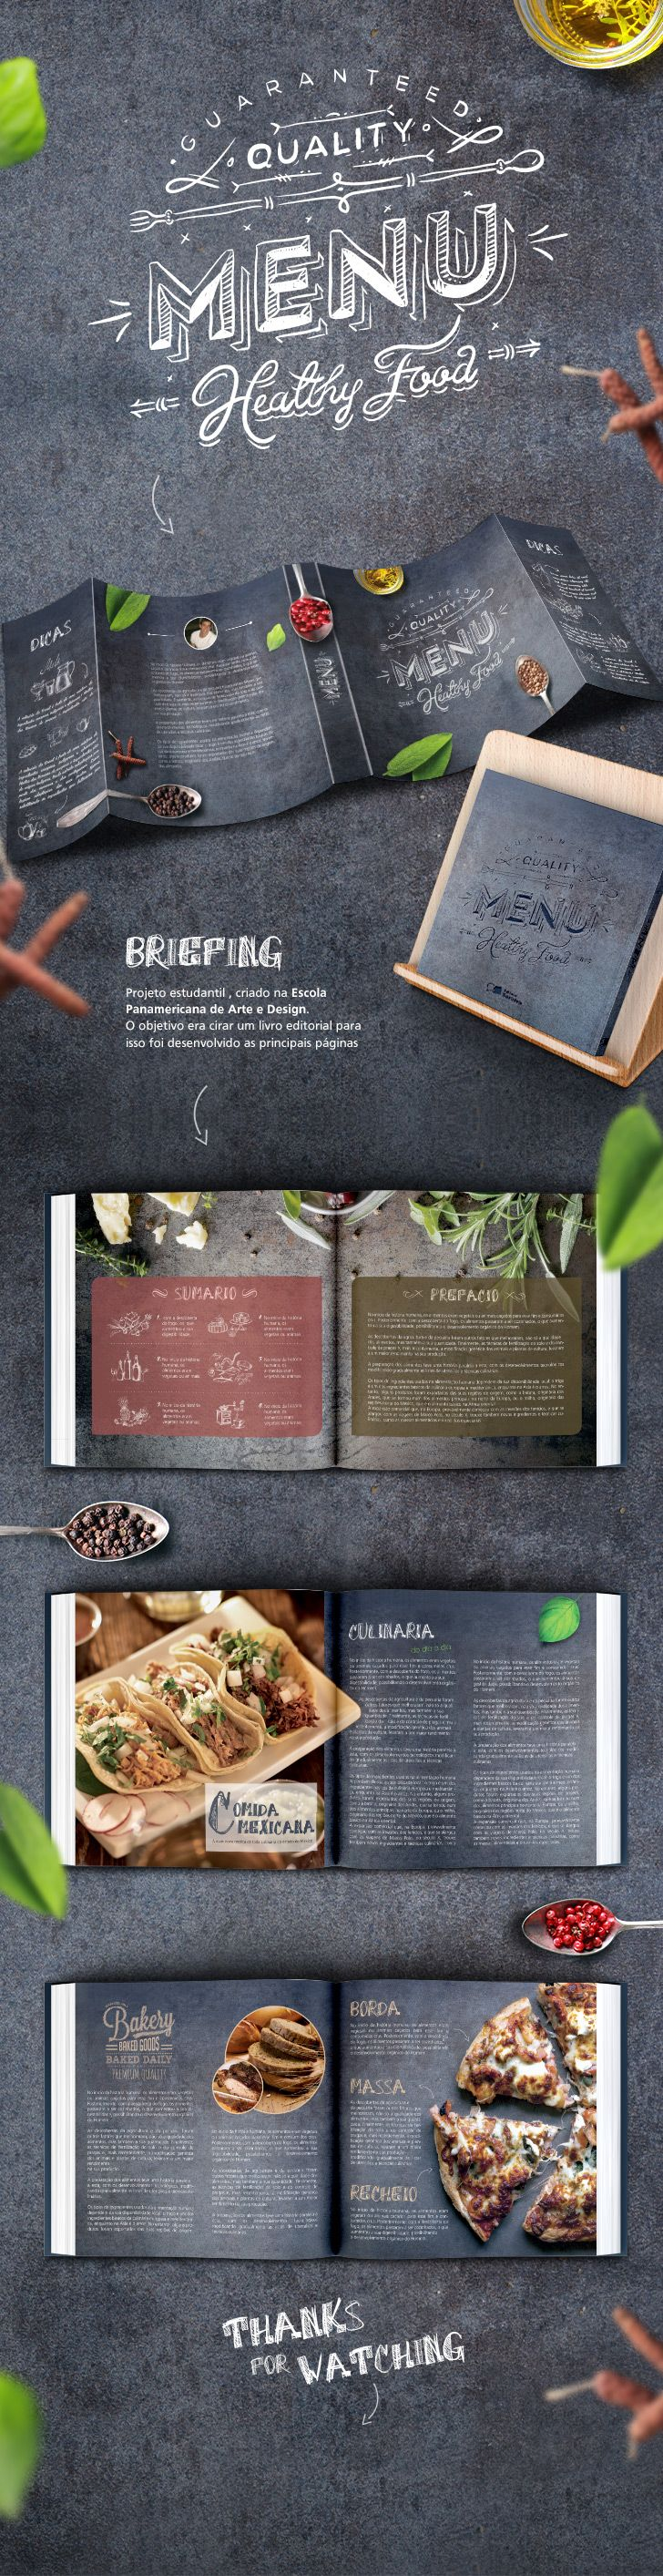 https://www.behance.net/gallery/20777487/Menu-Book-Gastronomy